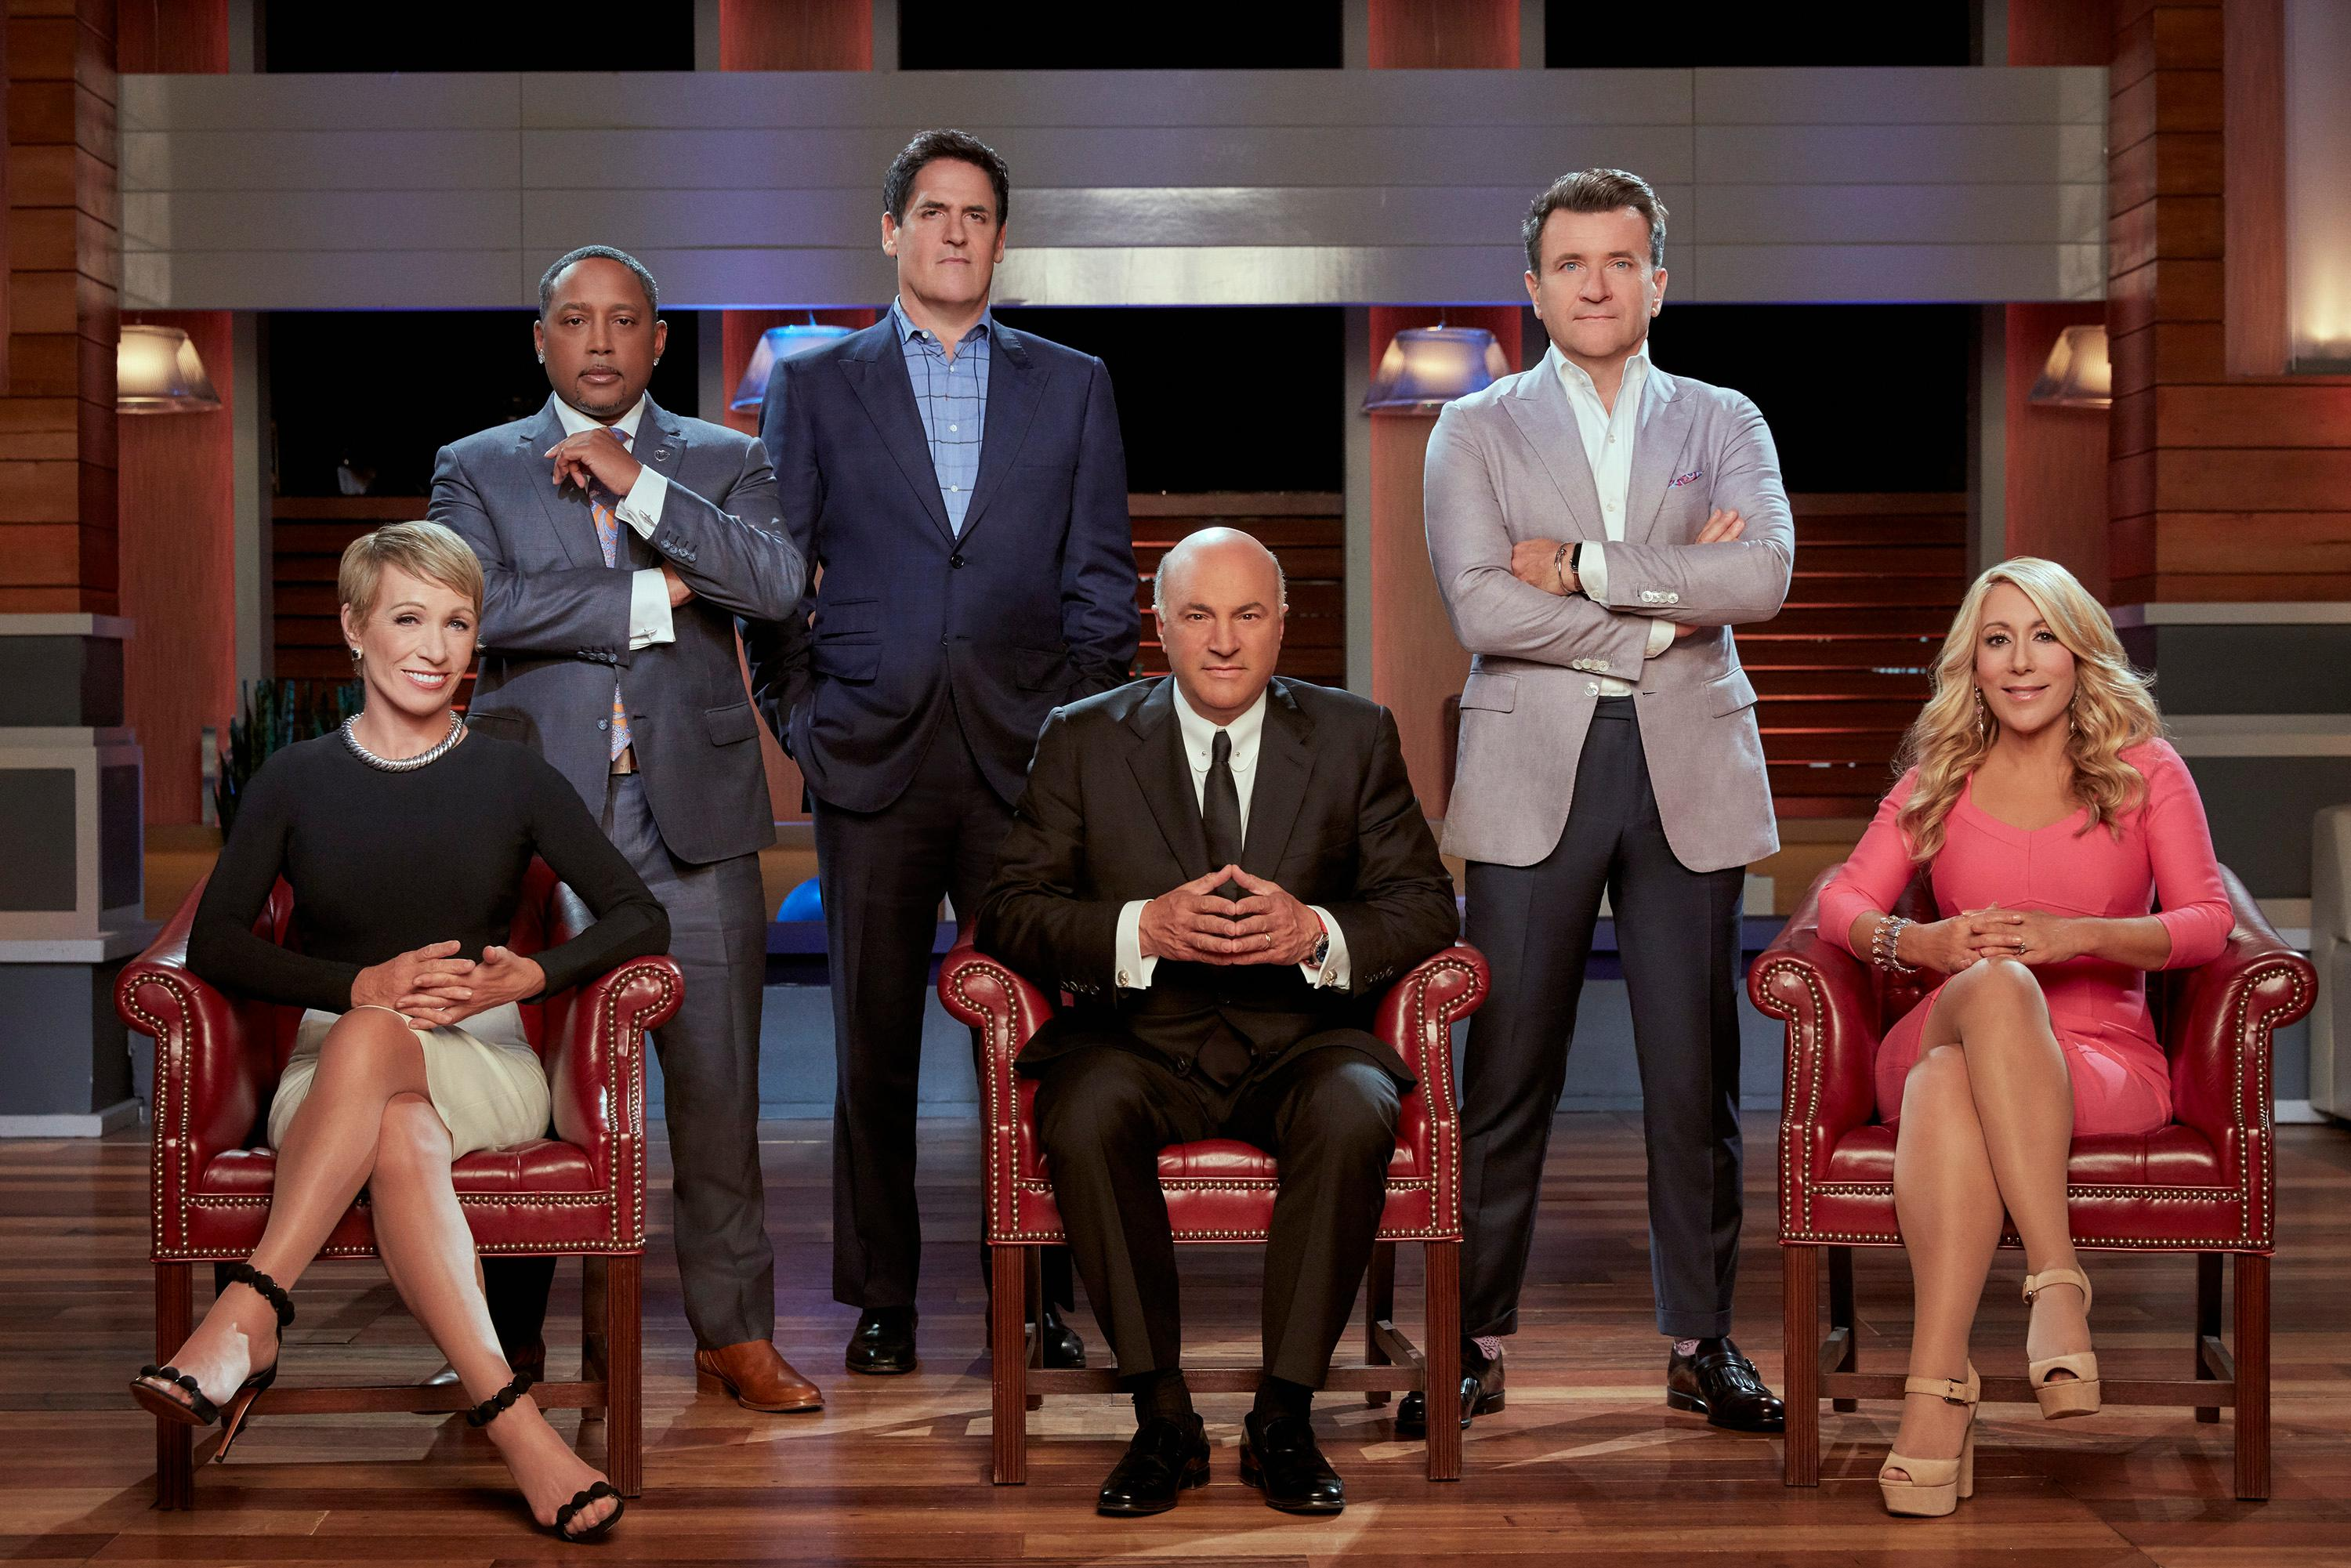 Shark Tank will be rolling into town to host an open casting call on Tuesday June 5 at Studio Xfinity.  (Image: ABC/Patrick Ecclesine)